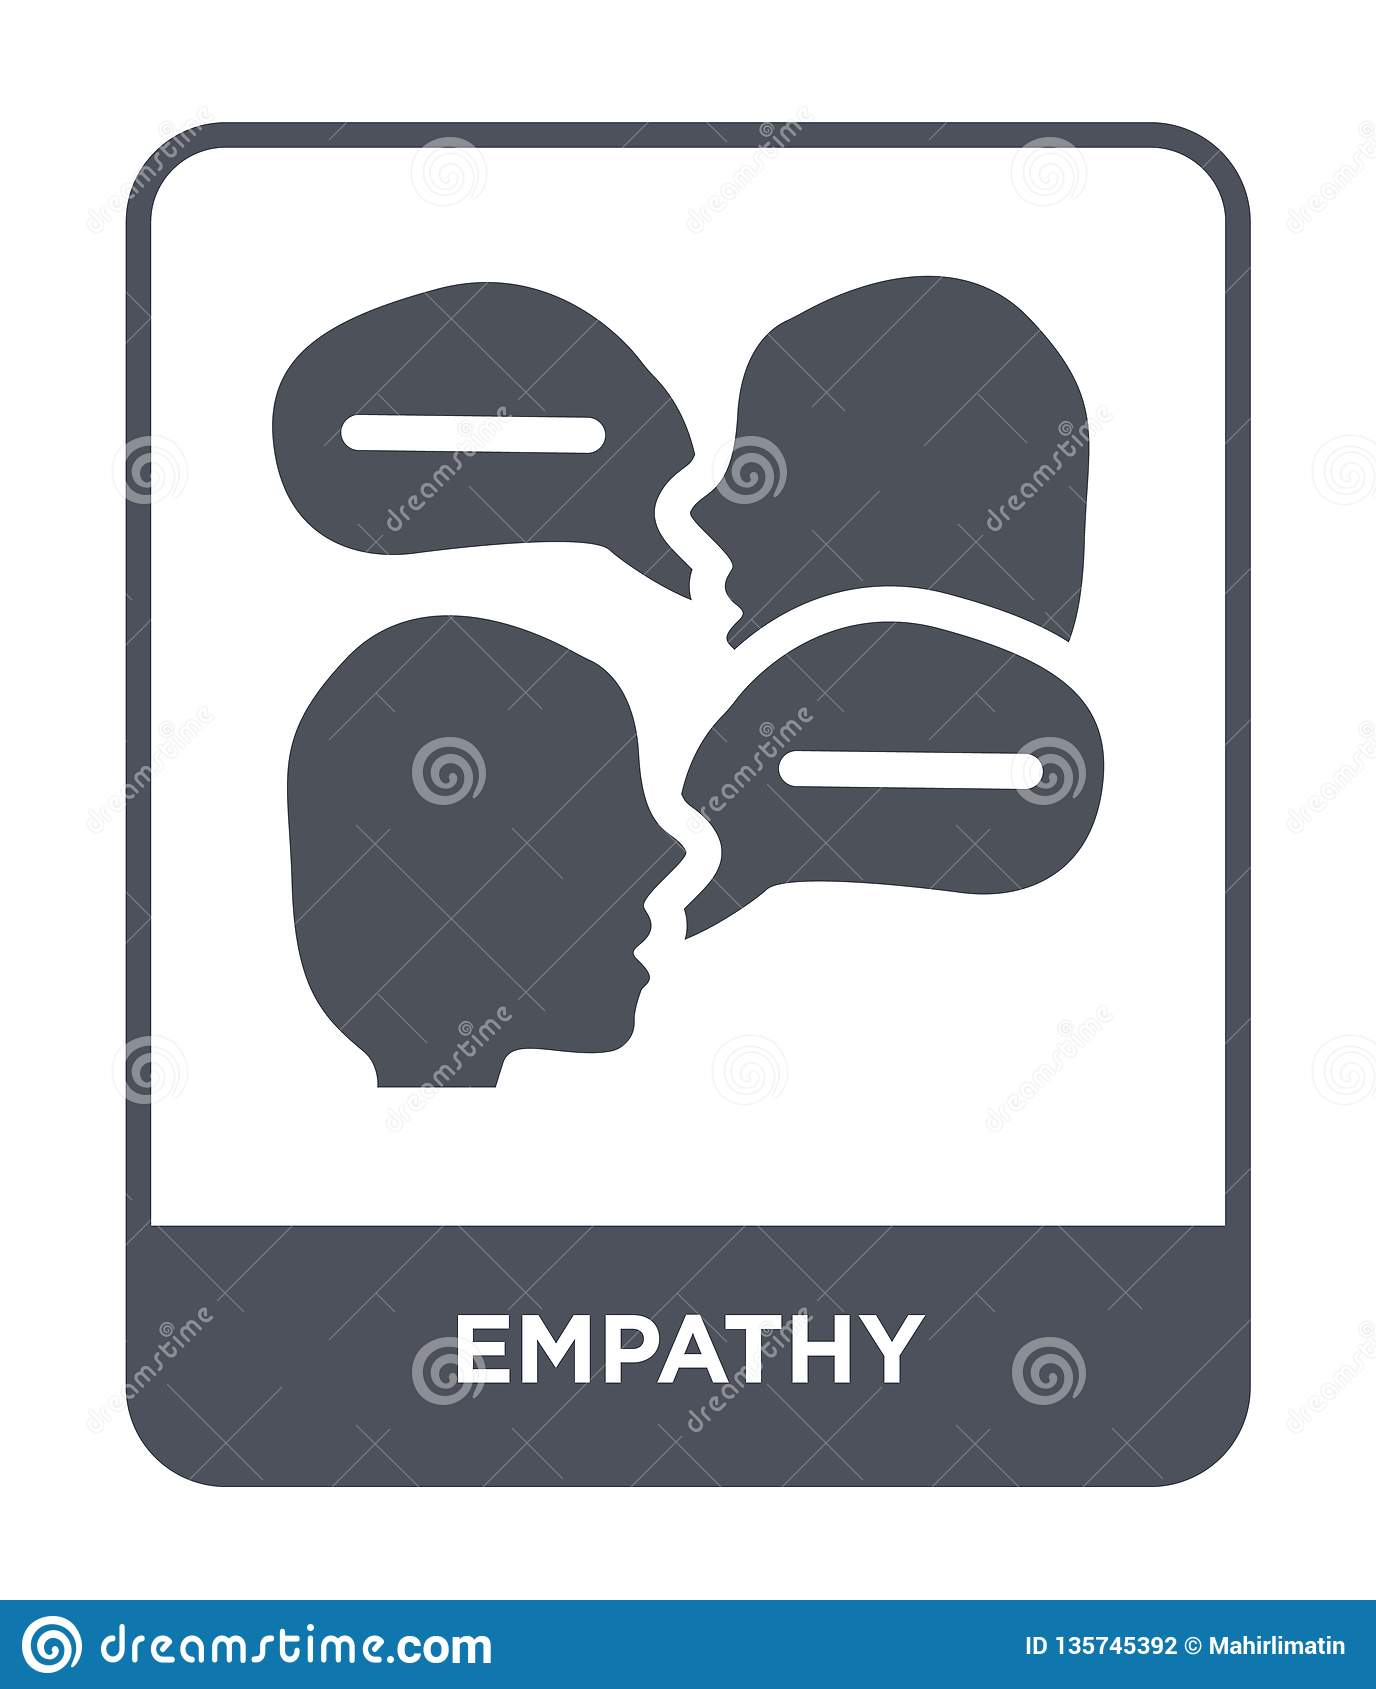 empathy icon in trendy design style. empathy icon isolated on white background. empathy vector icon simple and modern flat symbol